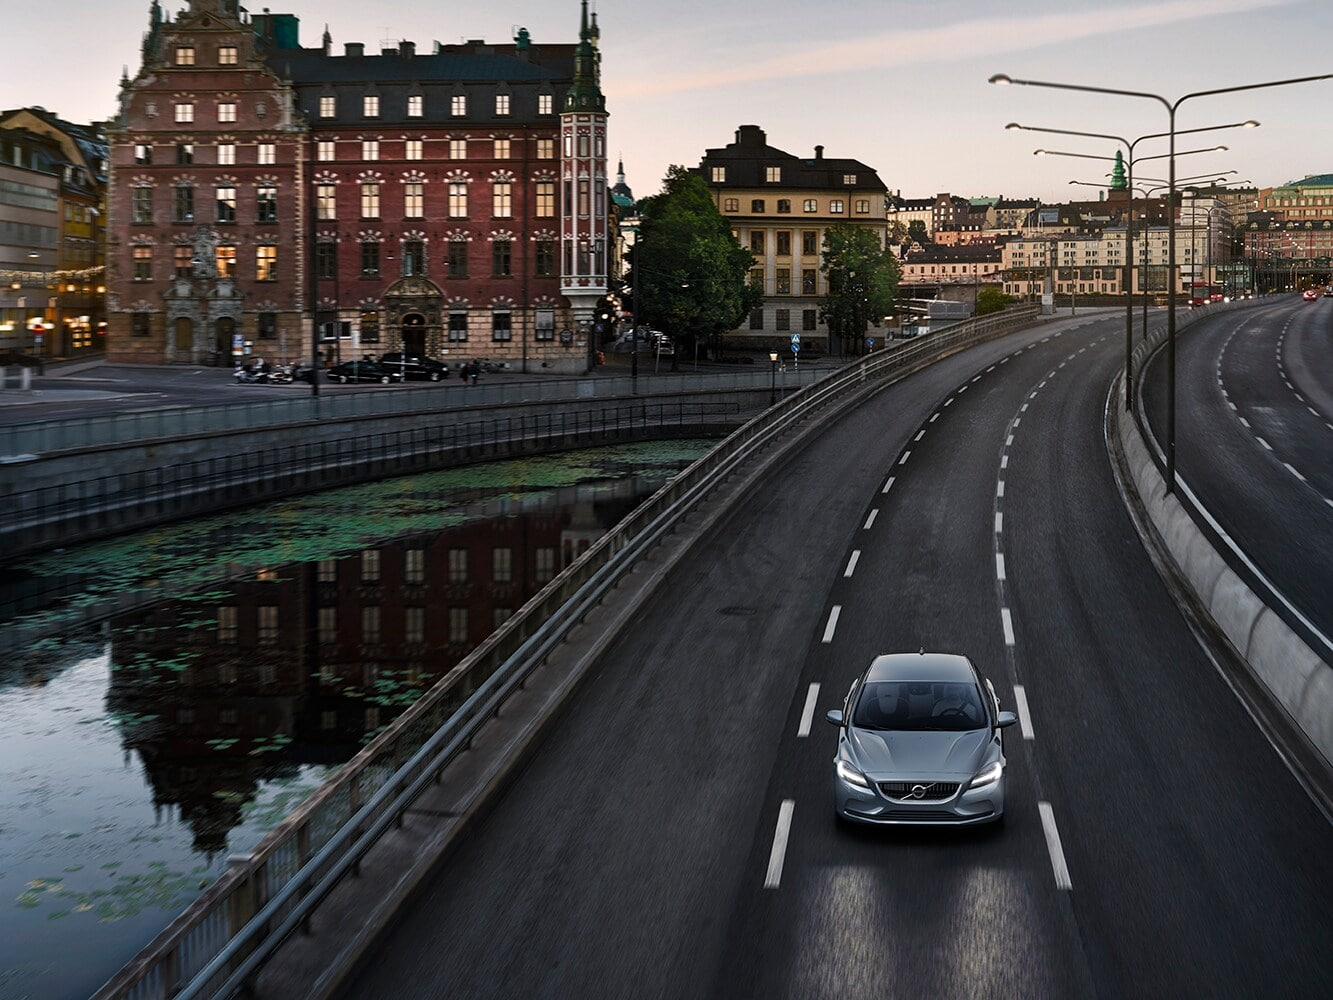 A Volvo V40 drives along a multi-lane road next to a city canal